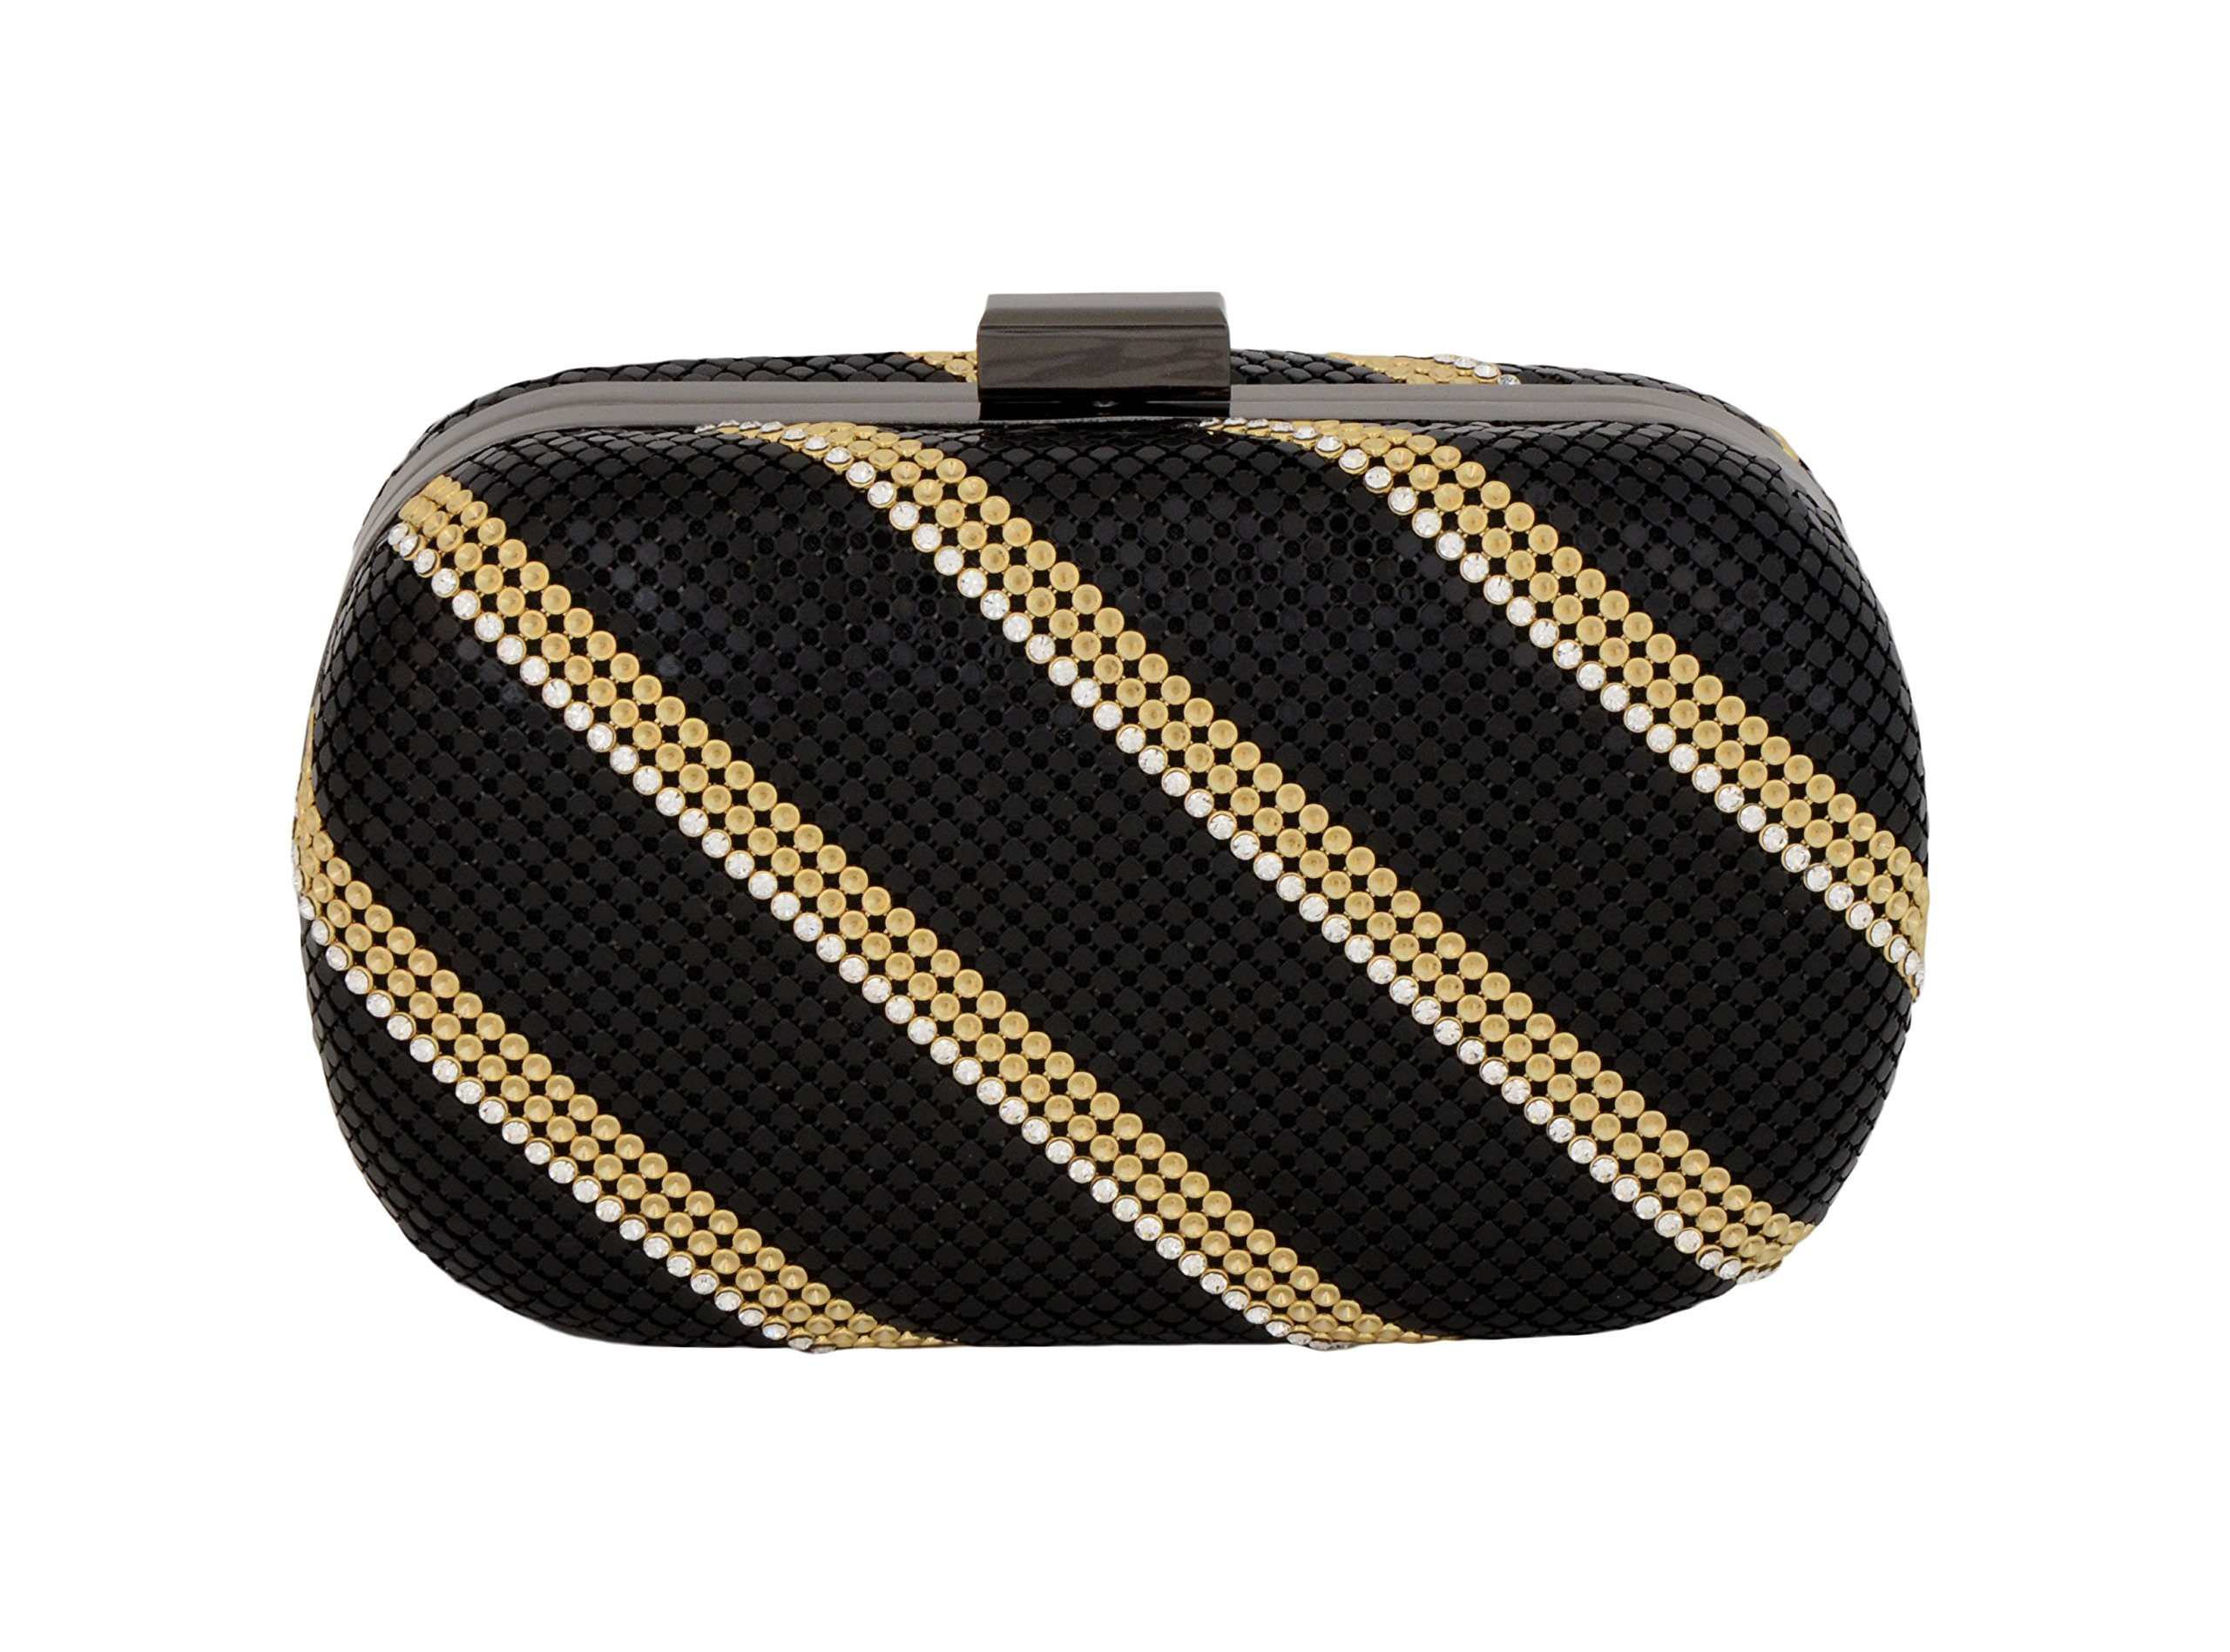 Whiting & Davis FCD Minaudiere 1-5860 Evening Bag,Black Gold,One Size